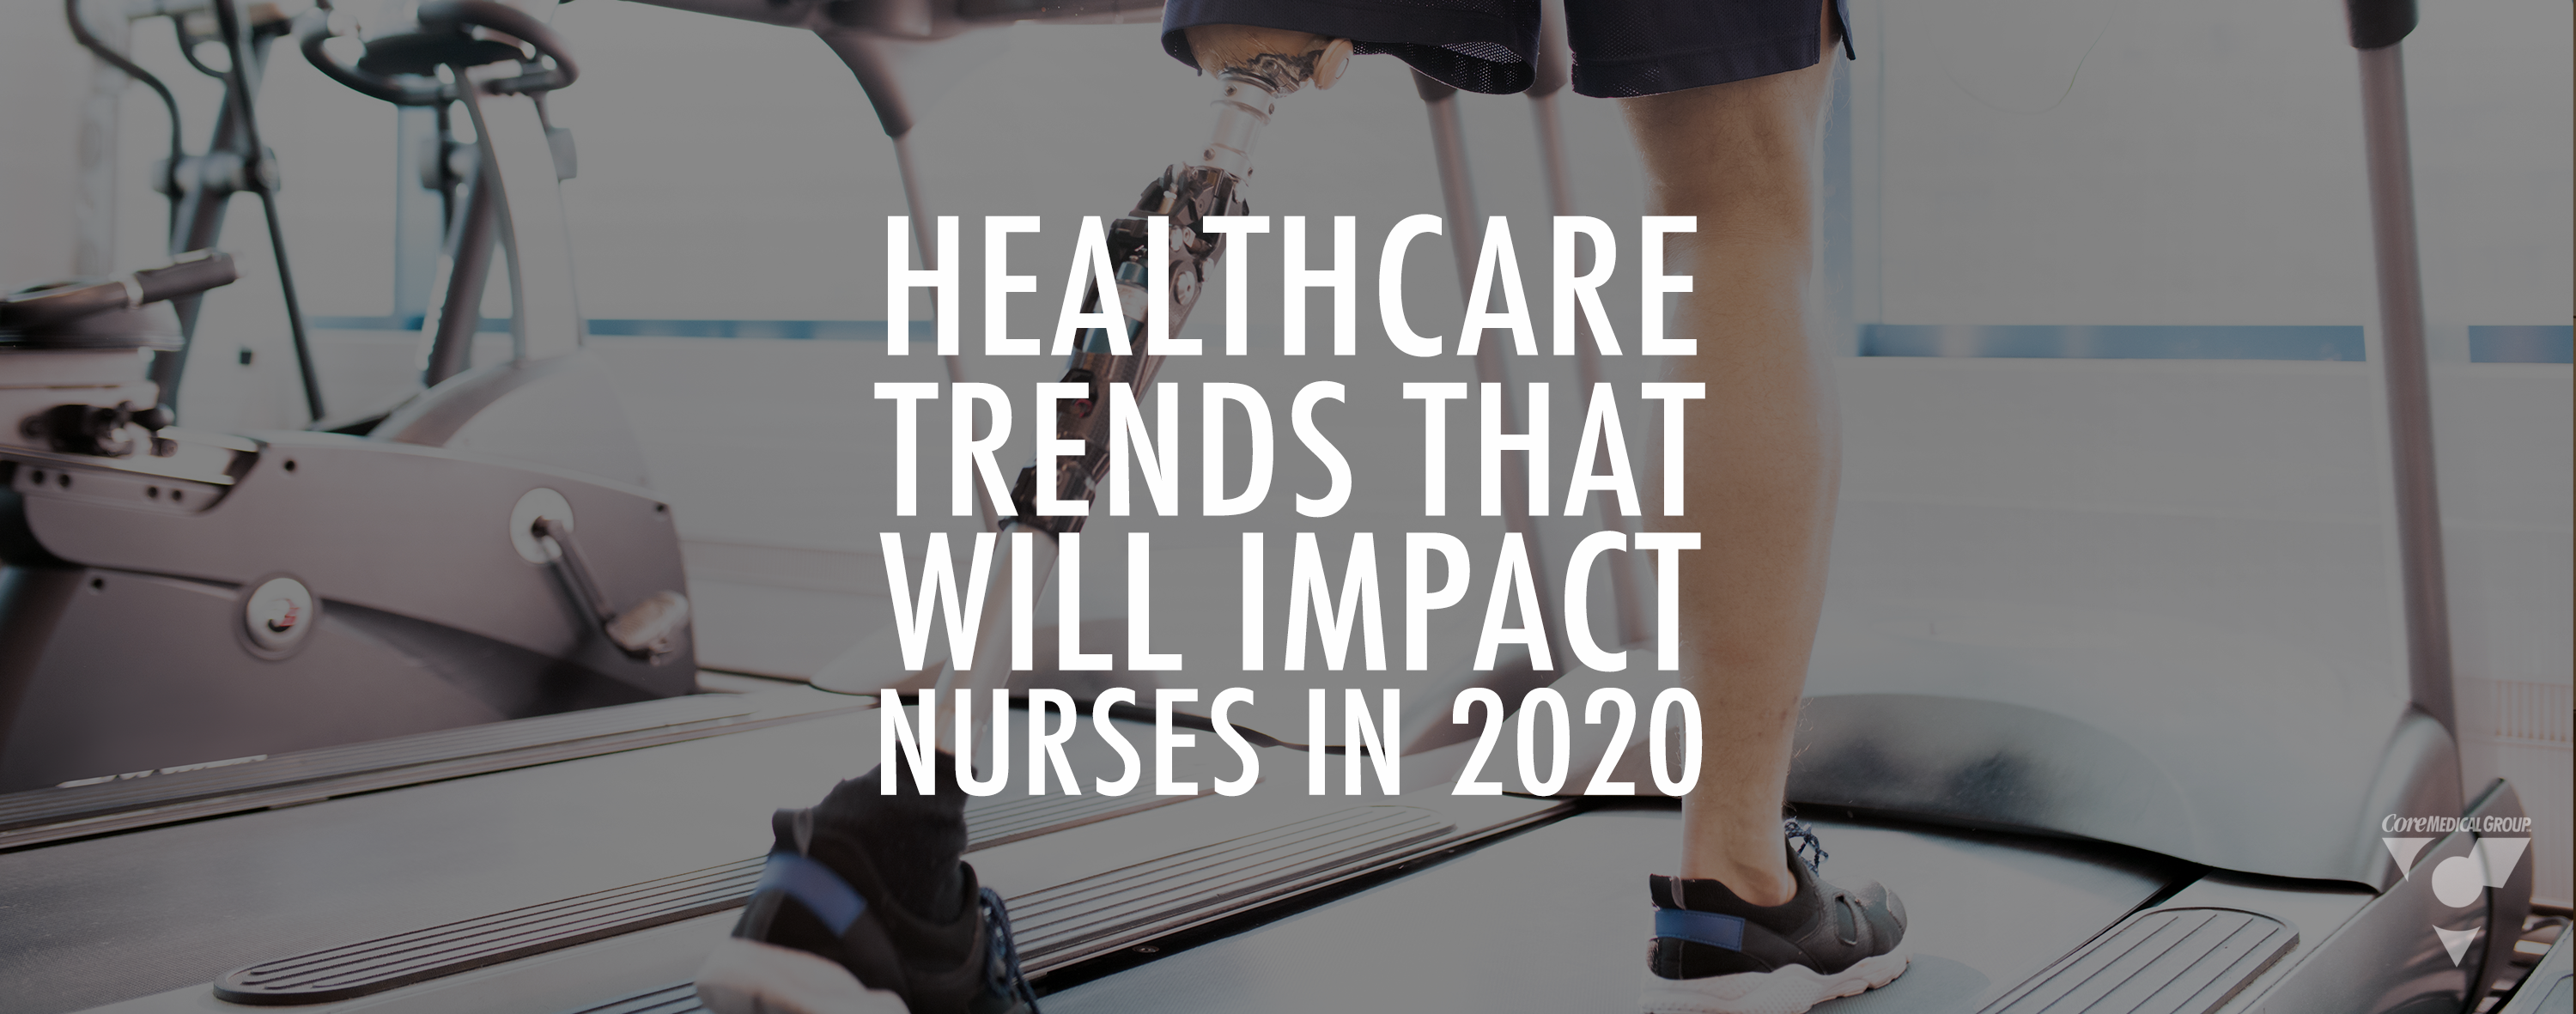 Healthcare Tends that will Impact Nurses in 2020